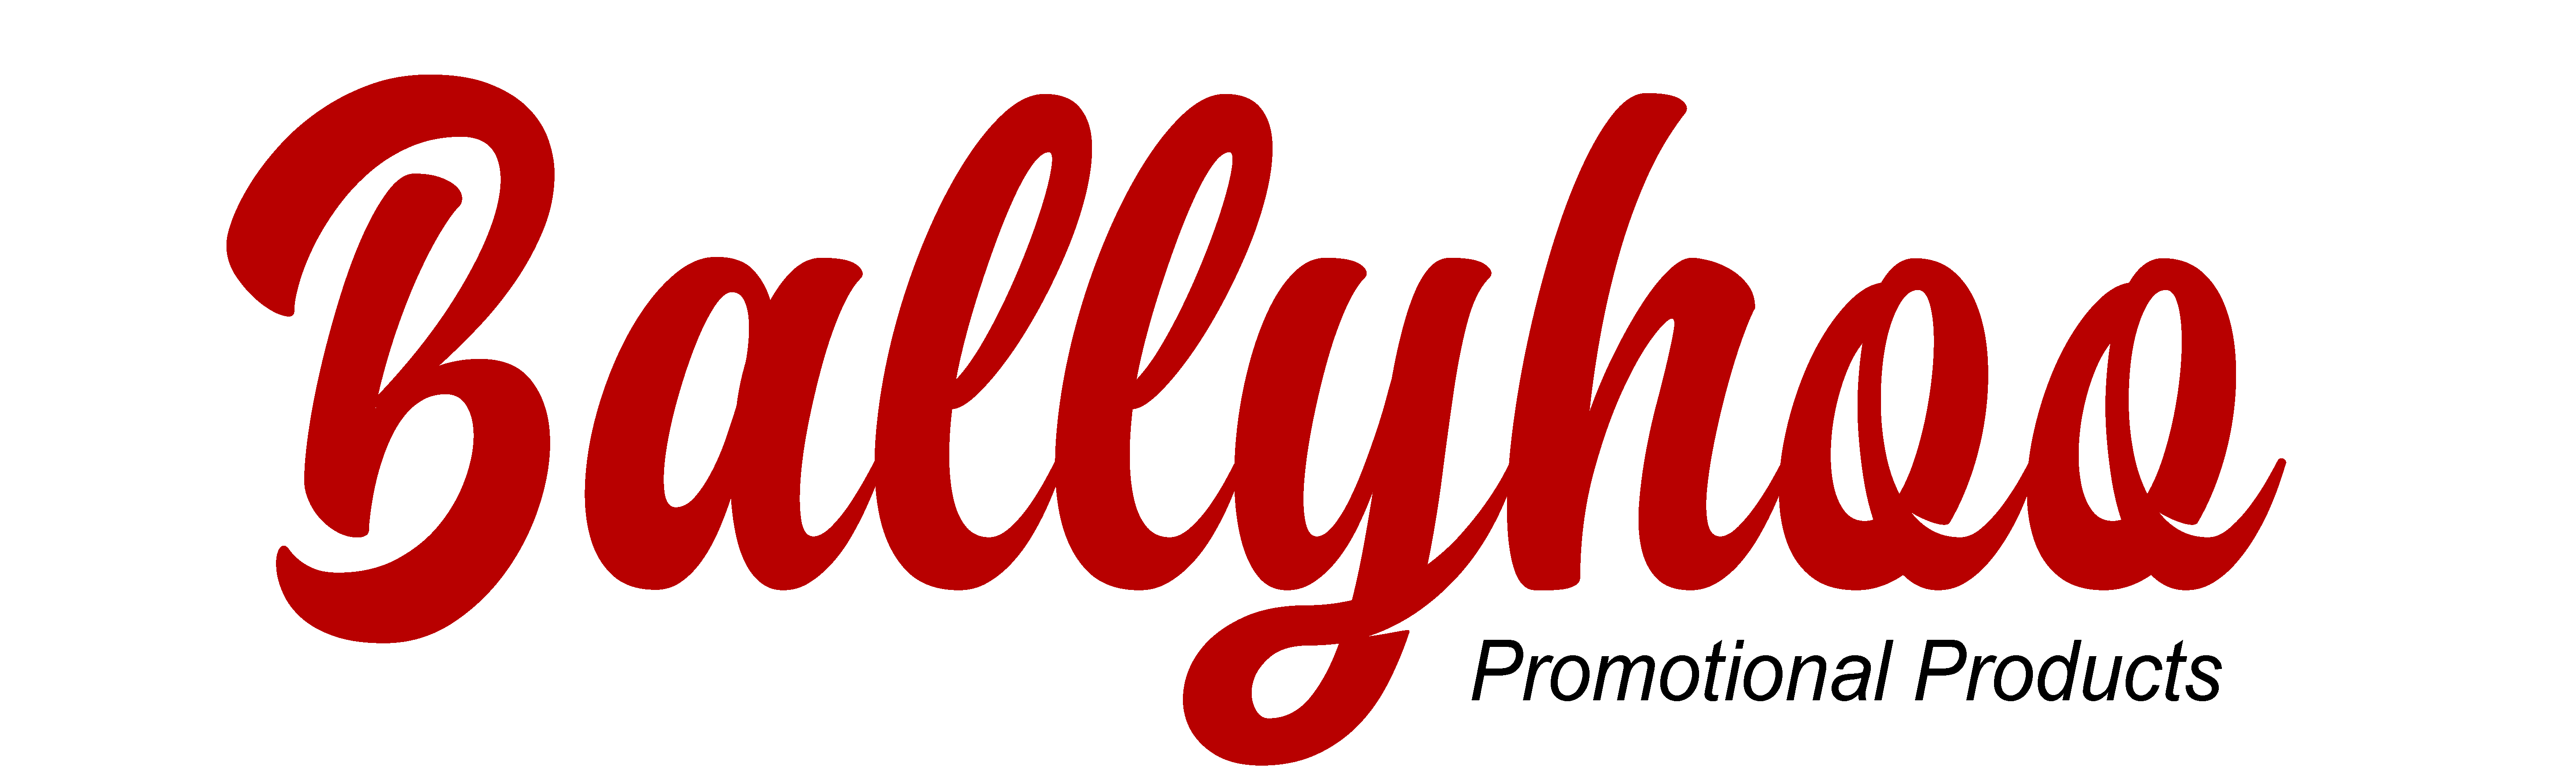 Ballyhoo Promotional Products, LLC is Excited to Announce the Launch of Our New Website